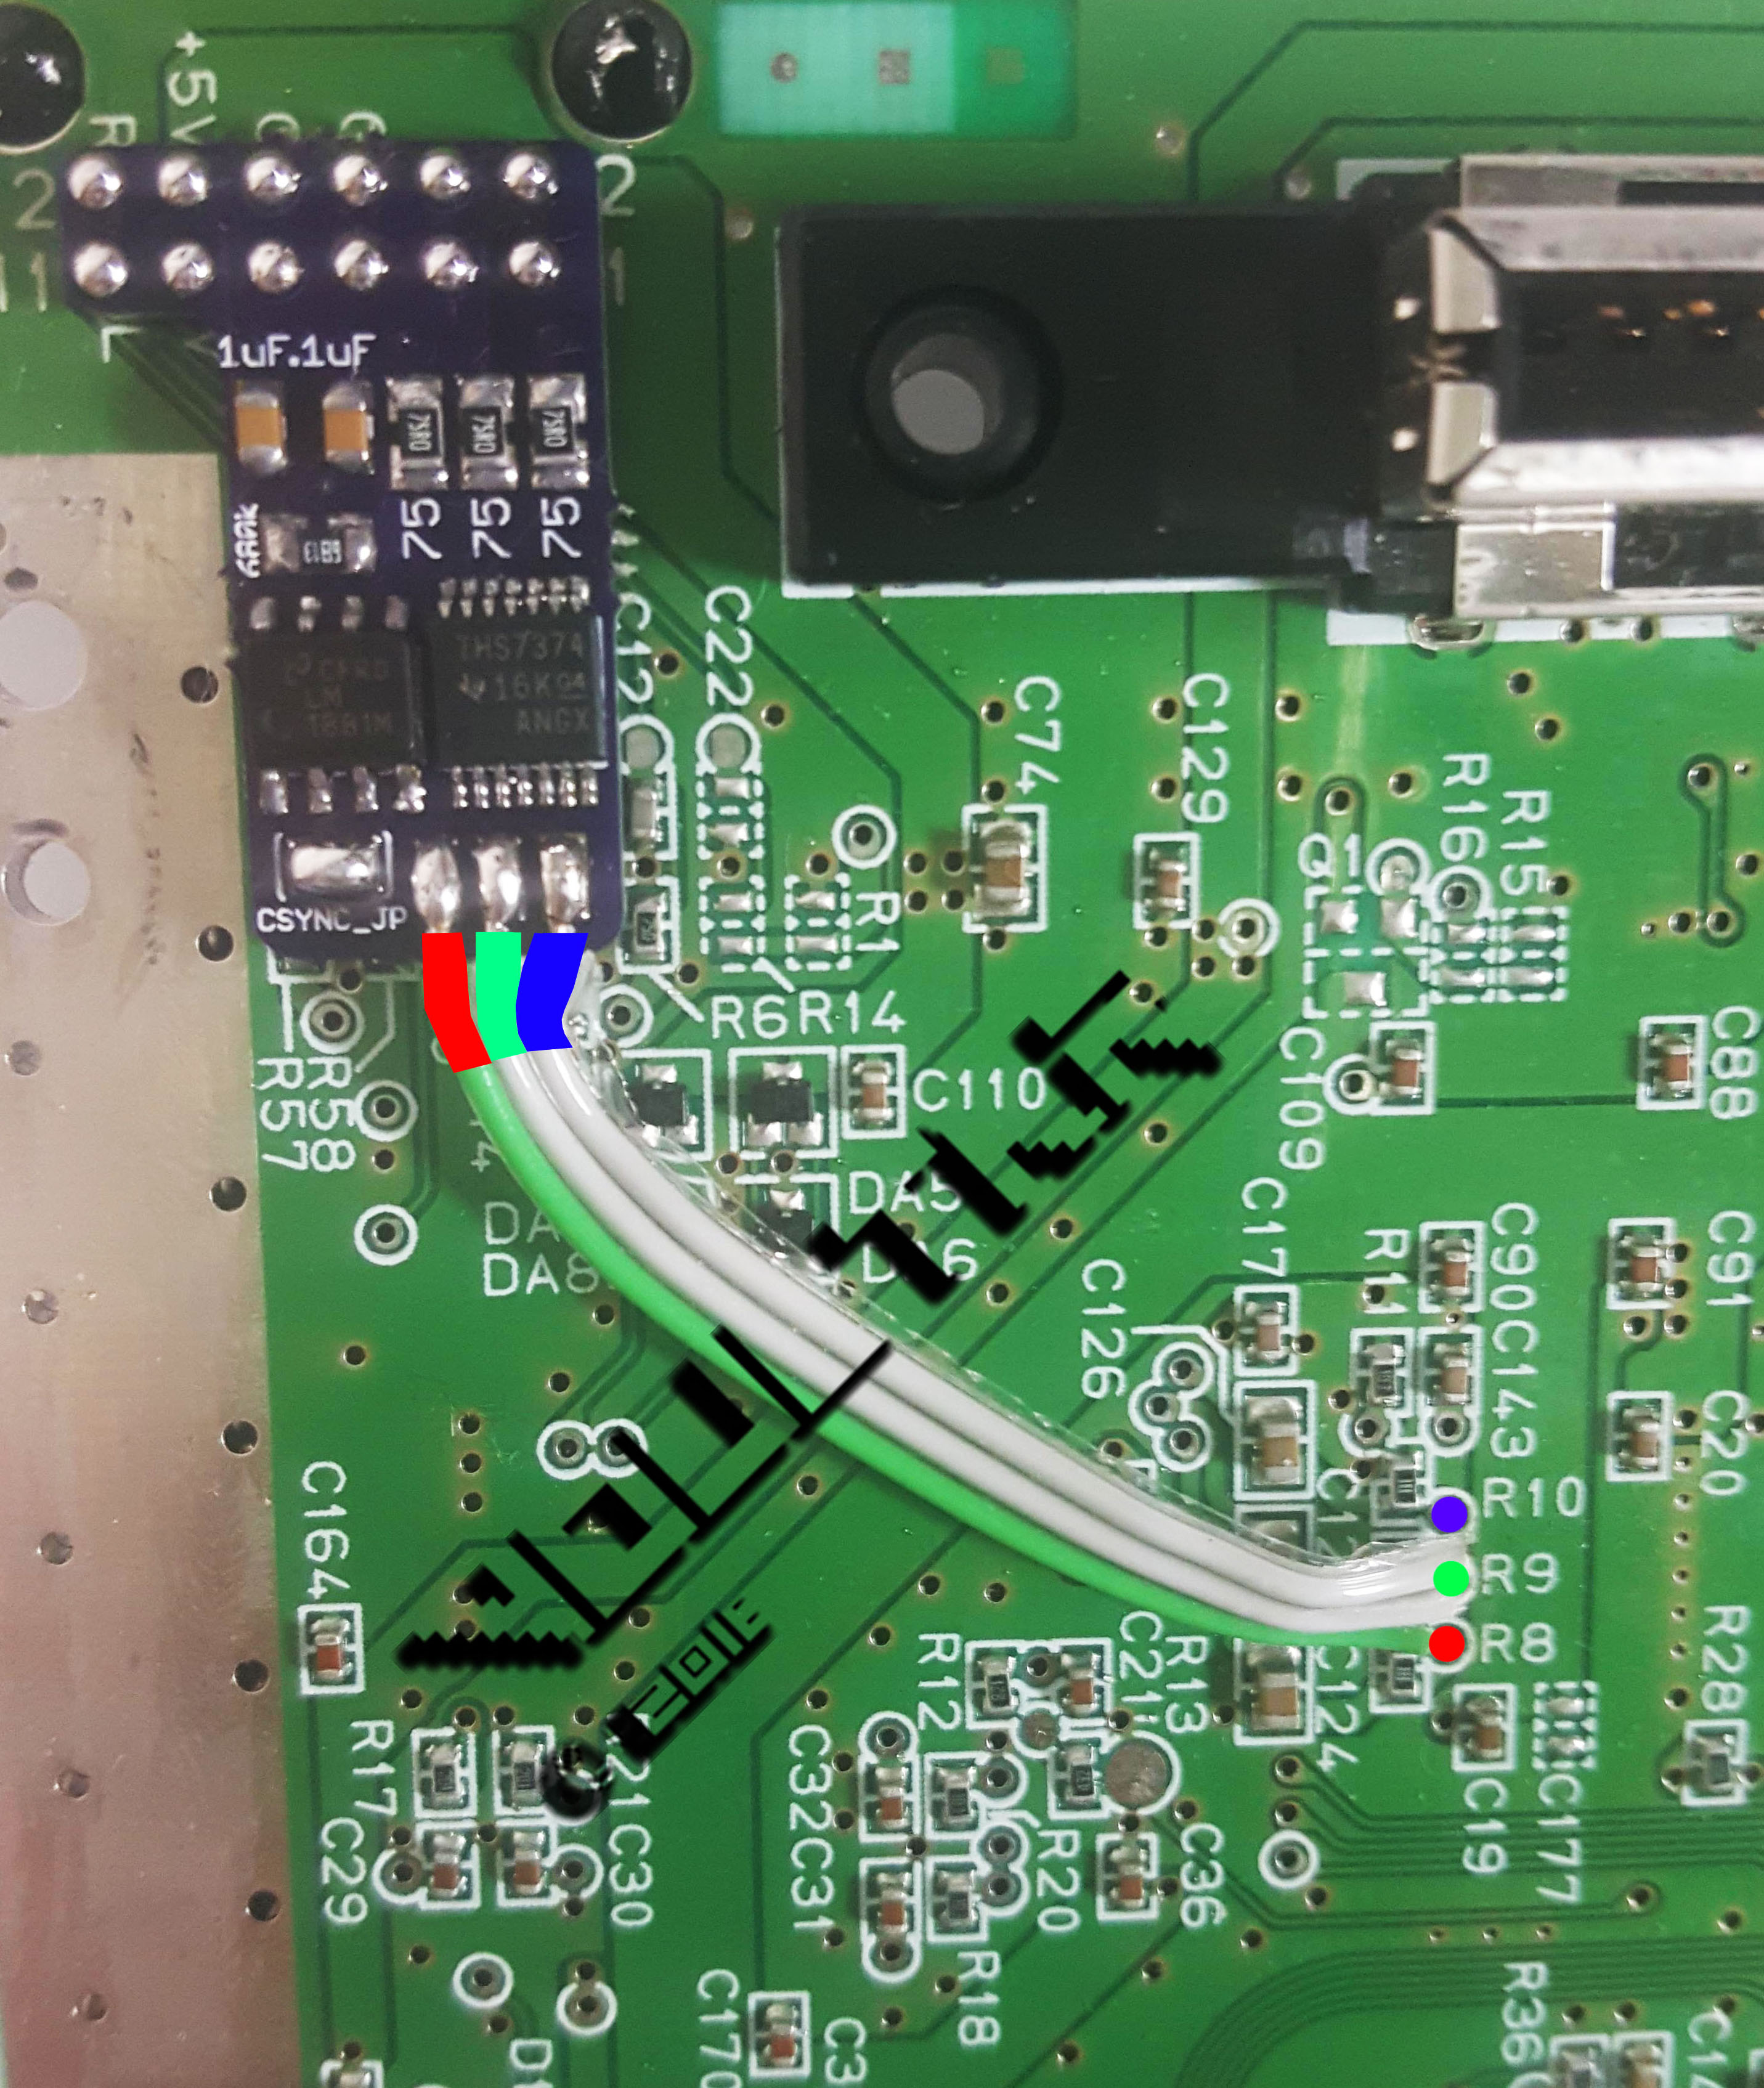 N64 RGB Mod | RetroRGB Nintendo Wiring Diagram on